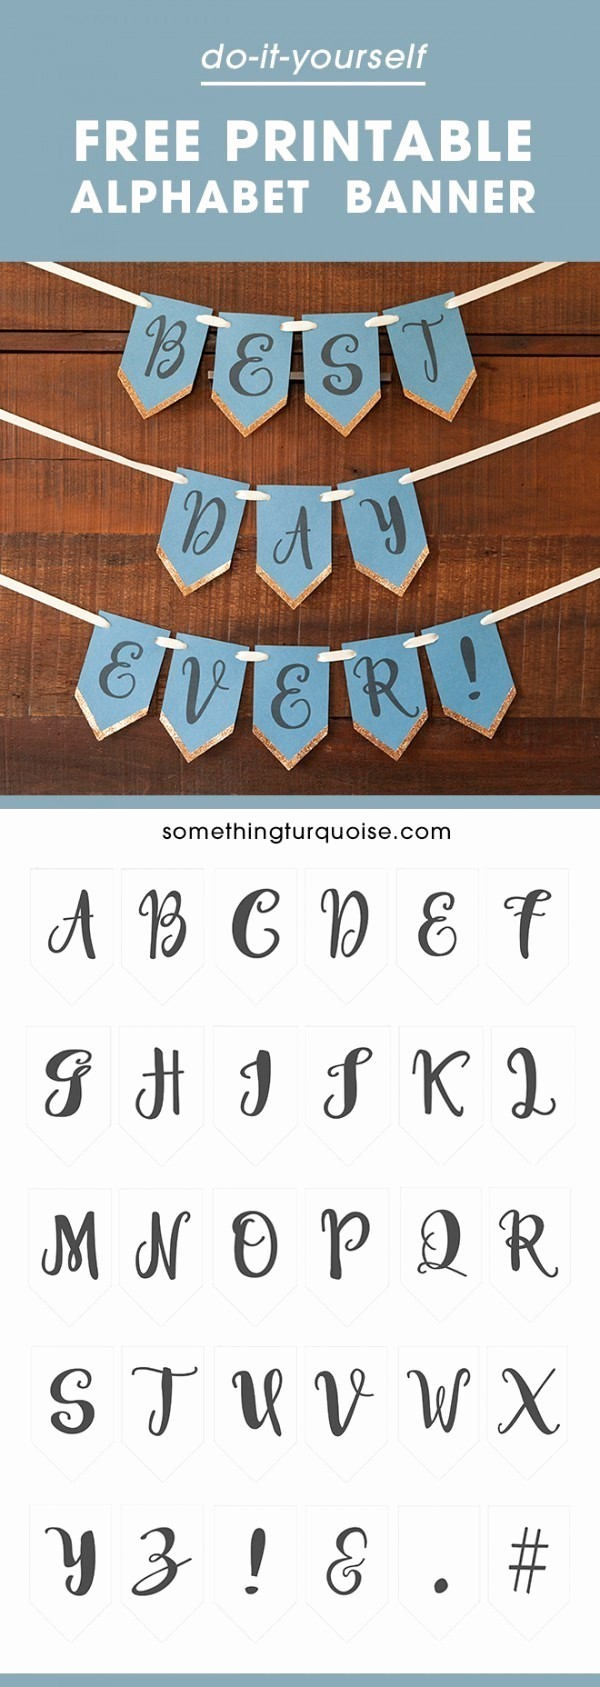 How to Make Banner Letters Lovely Free Printable Full Alphabet Banner – Party Ideas